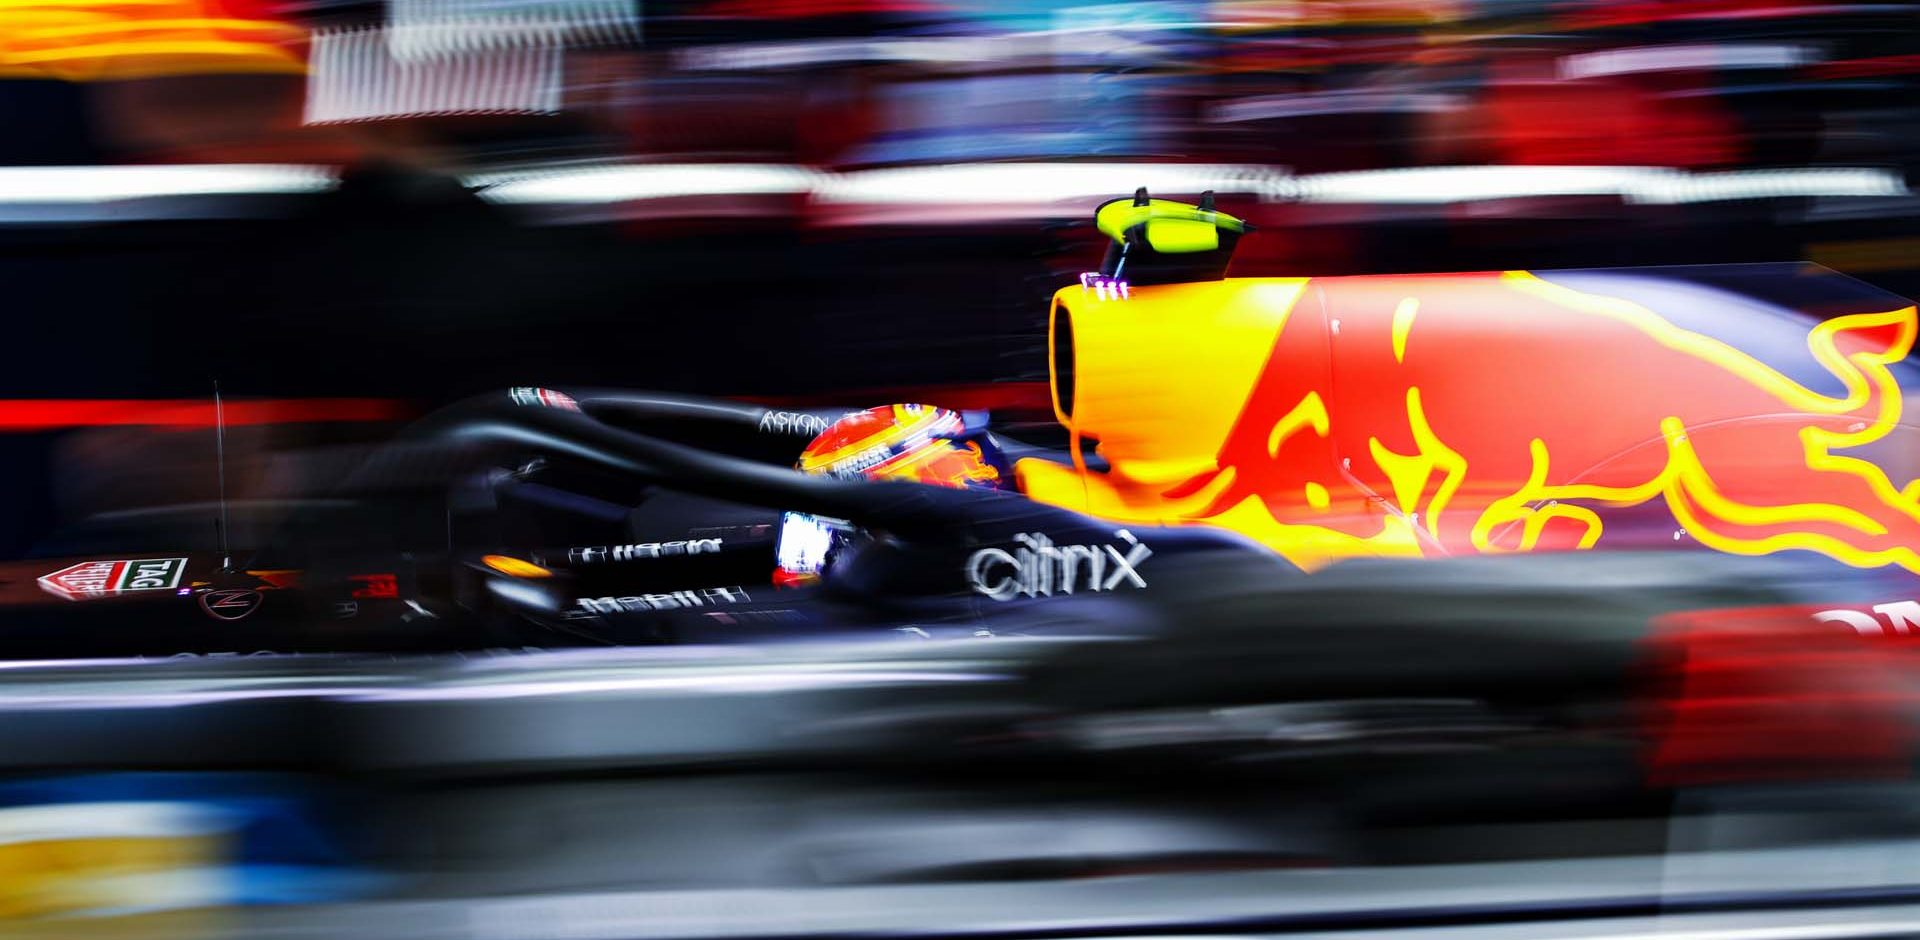 PORTIMAO, PORTUGAL - OCTOBER 24: Alexander Albon of Thailand driving the (23) Aston Martin Red Bull Racing RB16 leaves the garage during final practice ahead of the F1 Grand Prix of Portugal at Autodromo Internacional do Algarve on October 24, 2020 in Portimao, Portugal. (Photo by Mark Thompson/Getty Images) beatuy